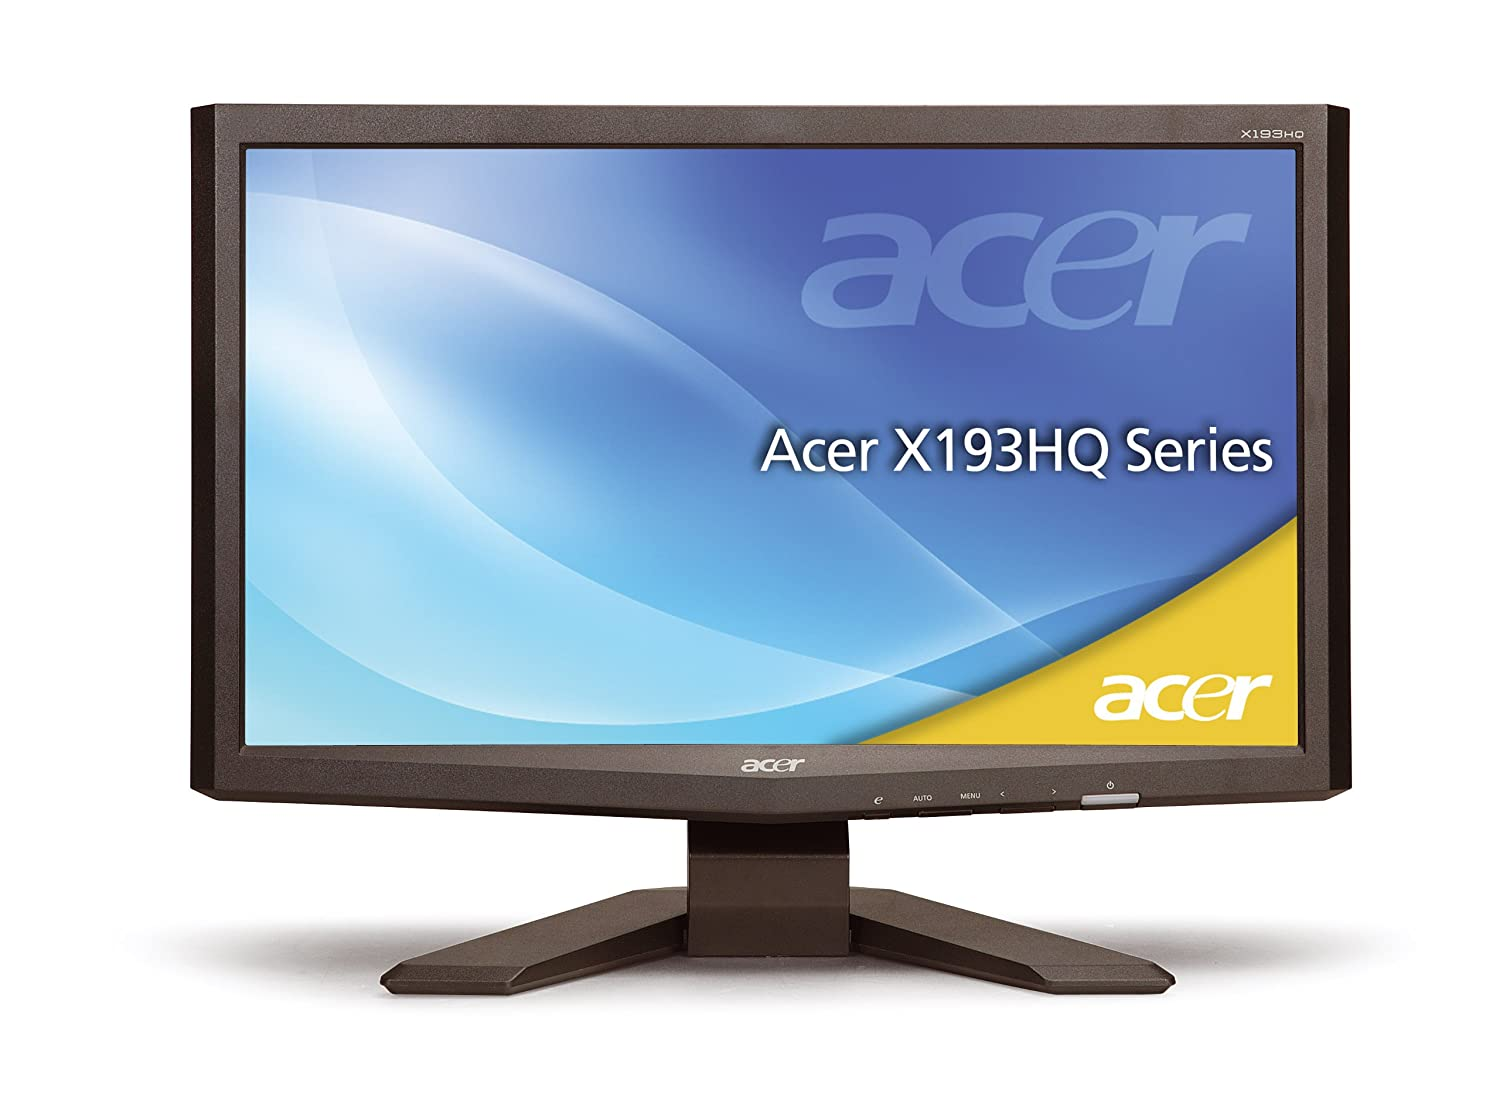 X193HQ ACER WINDOWS 8.1 DRIVERS DOWNLOAD